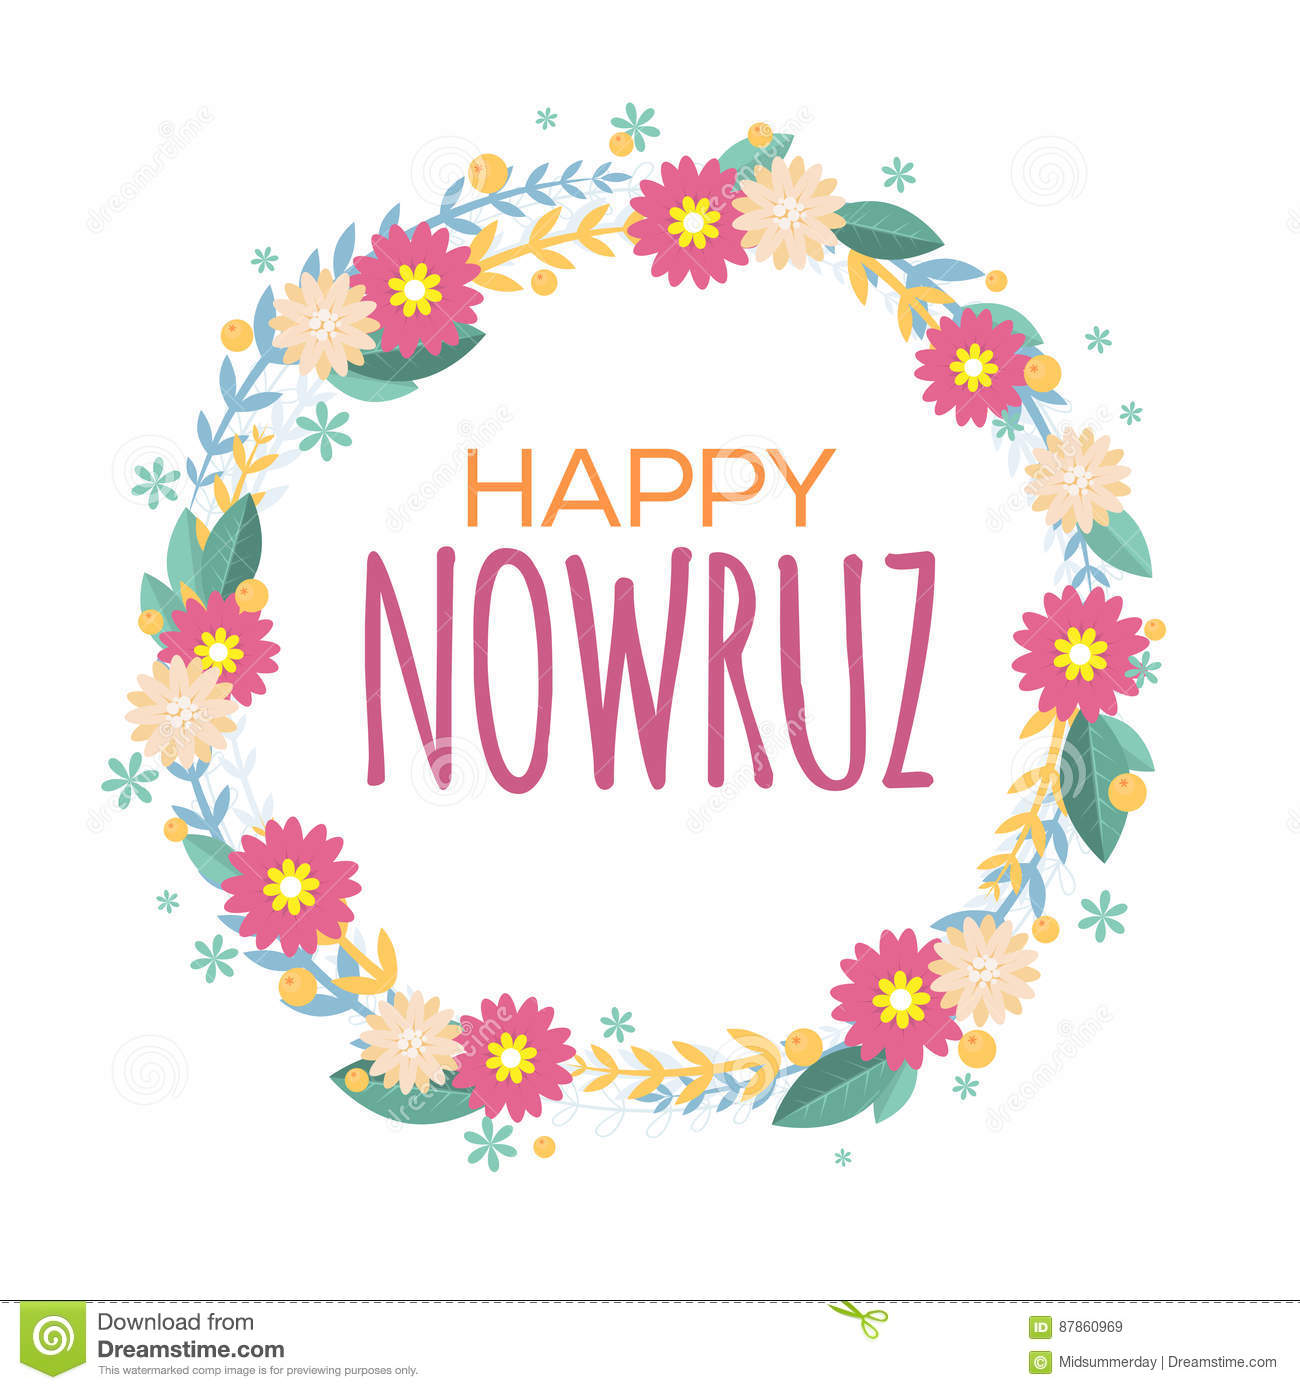 Happy Nowruz Greeting Card With Flowers And Leaves. Iranian.